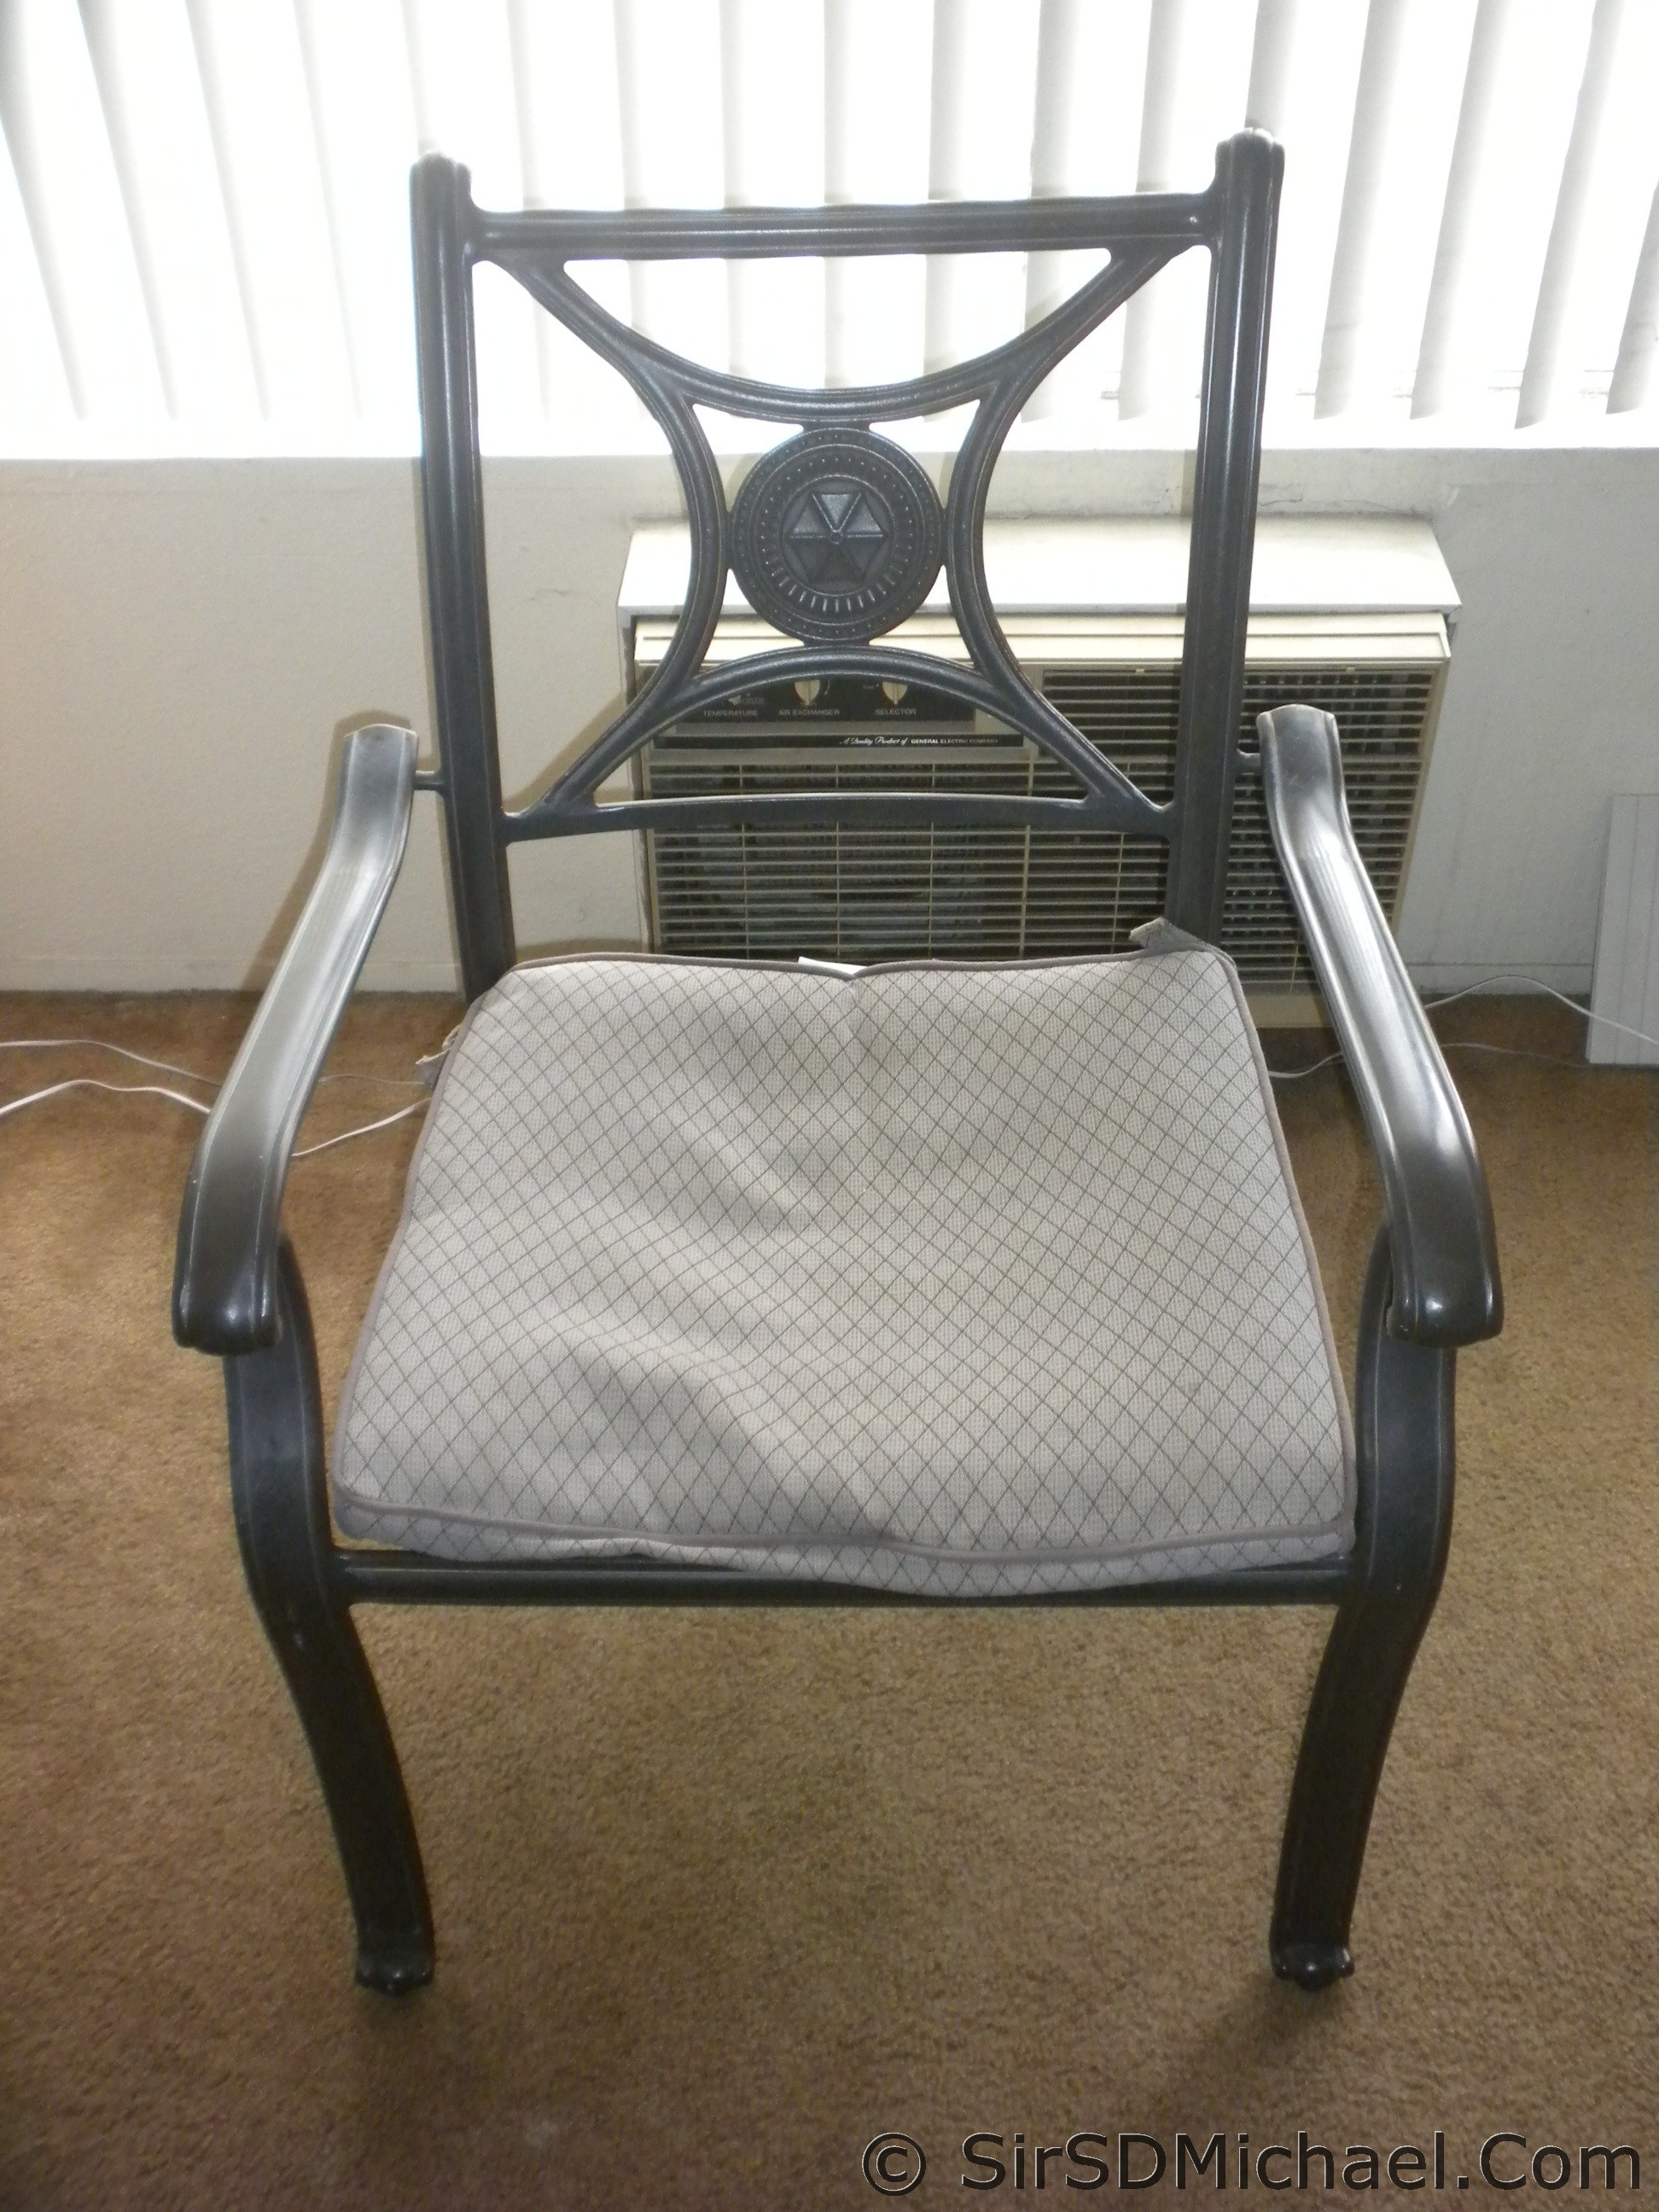 Bondage Chair - Still needs a bit of work but is quite functional.